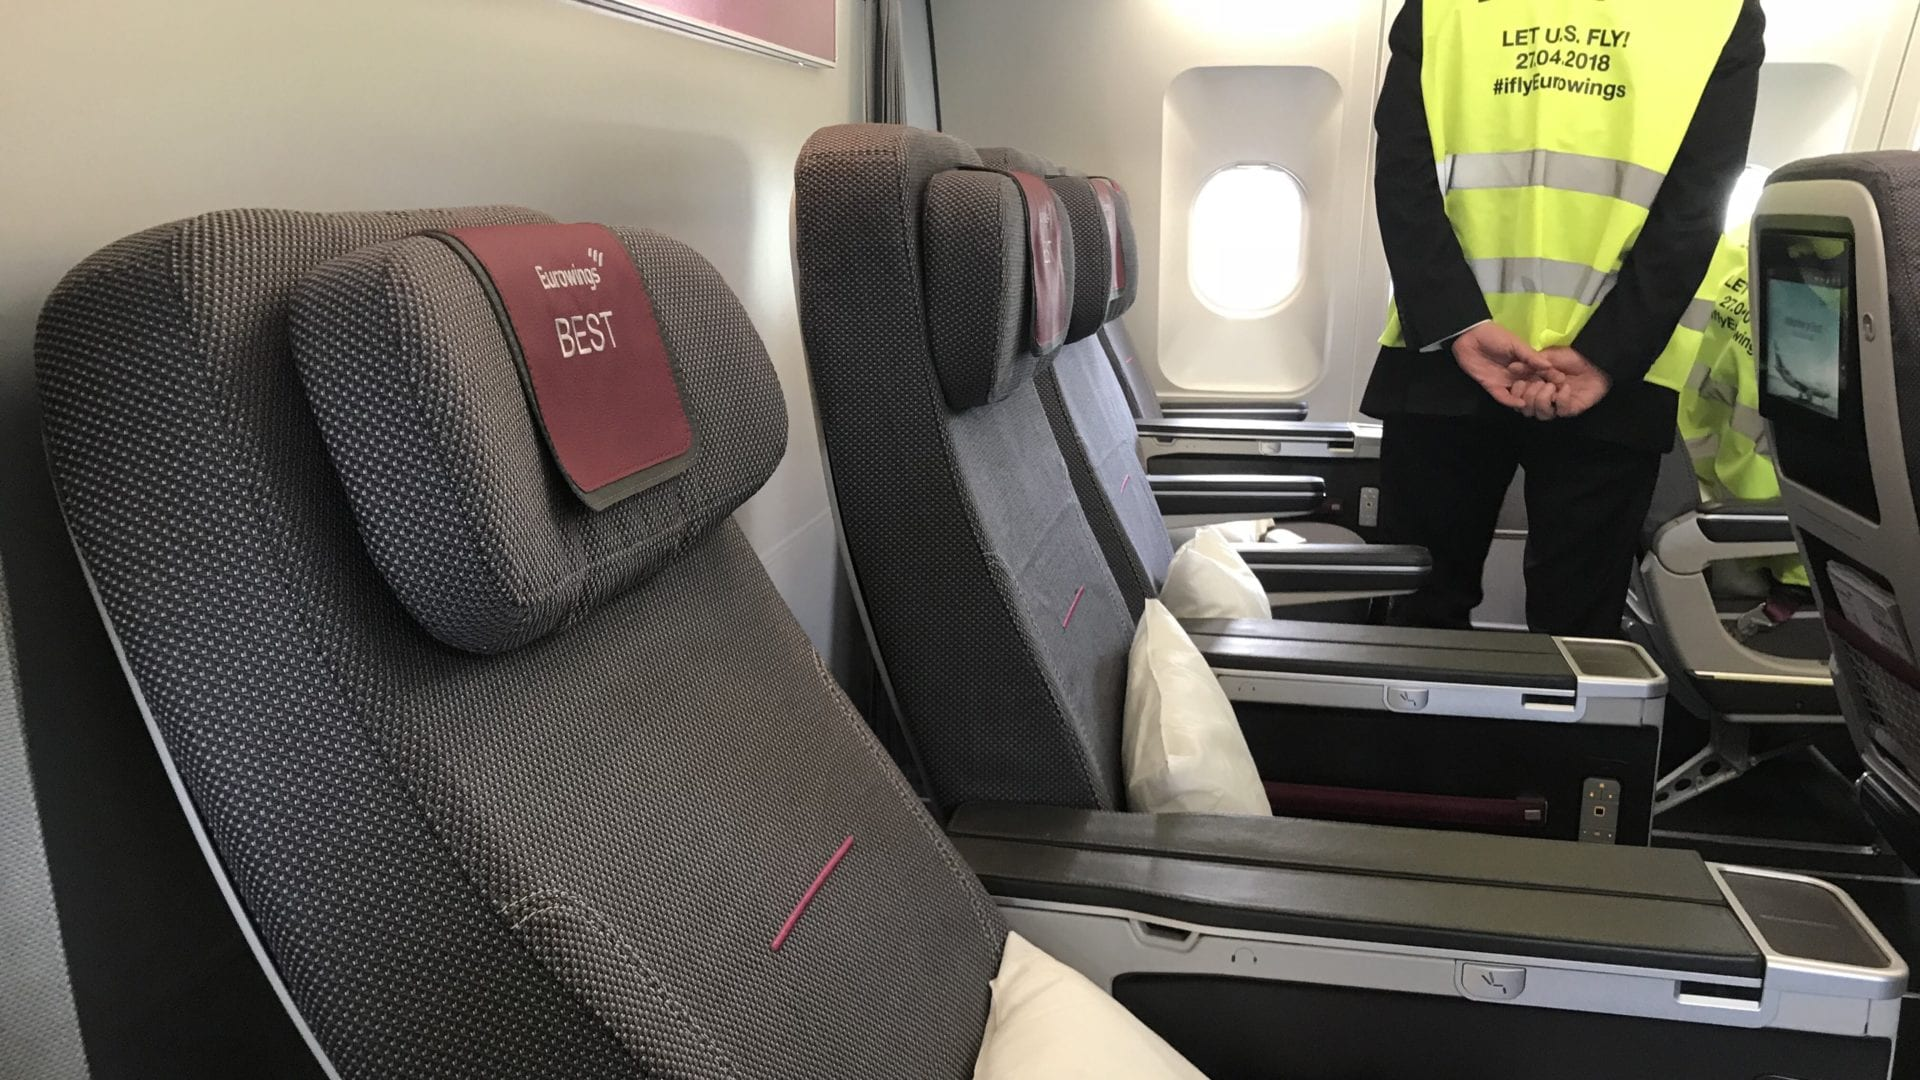 Eurowings Best Recline